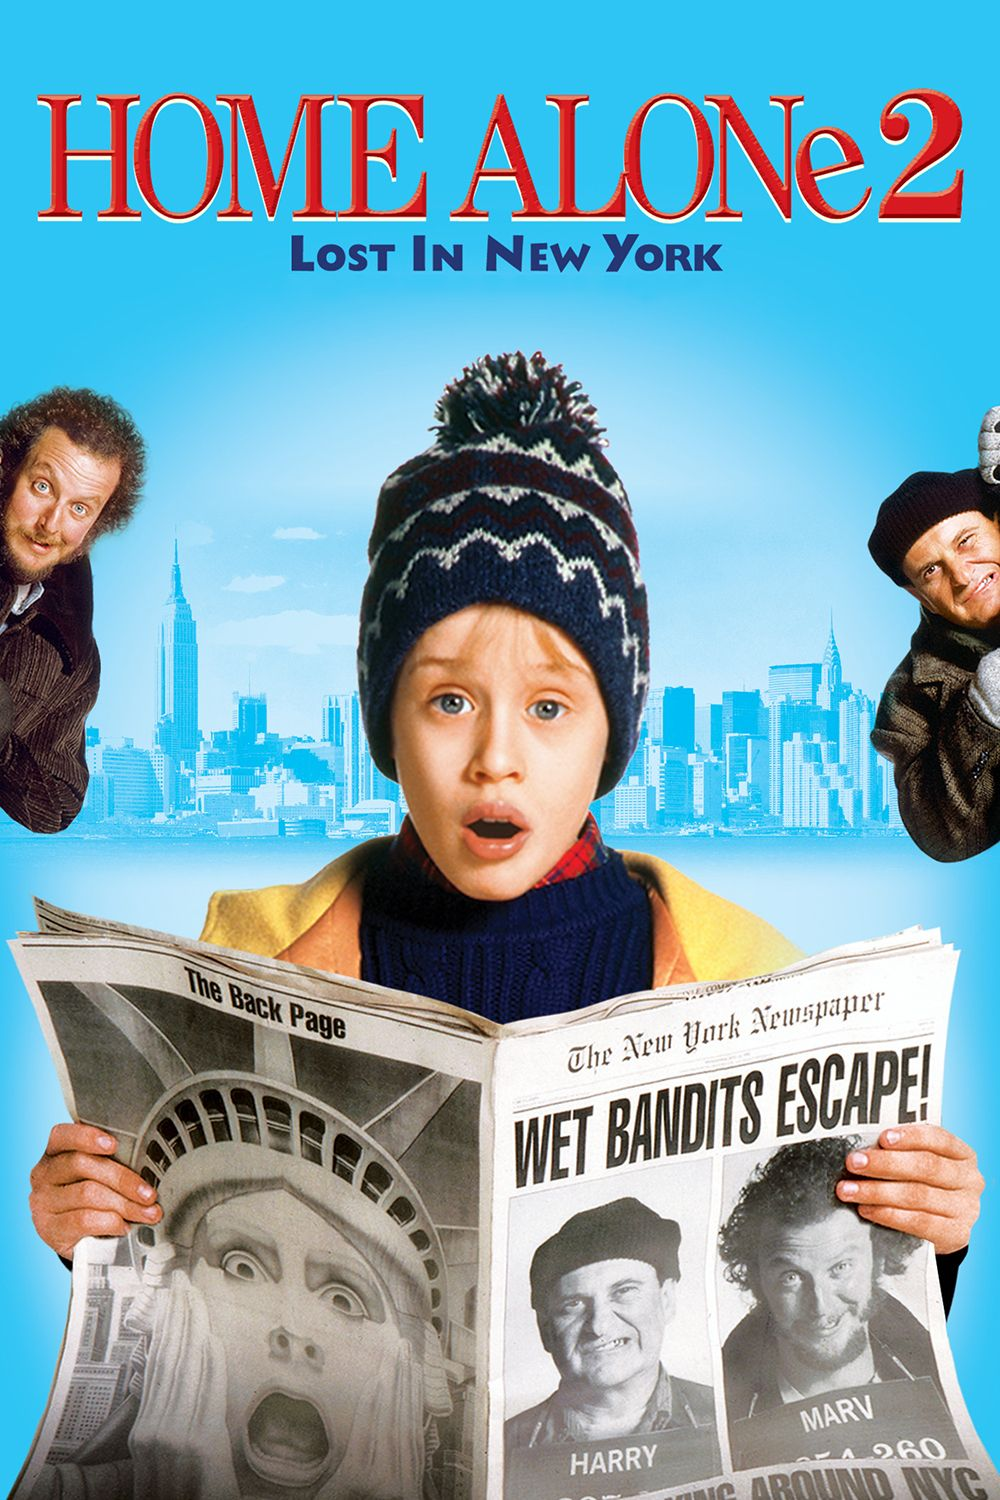 Home Alone 2 Lost in New York: Favorite Christmas movie, along with ...